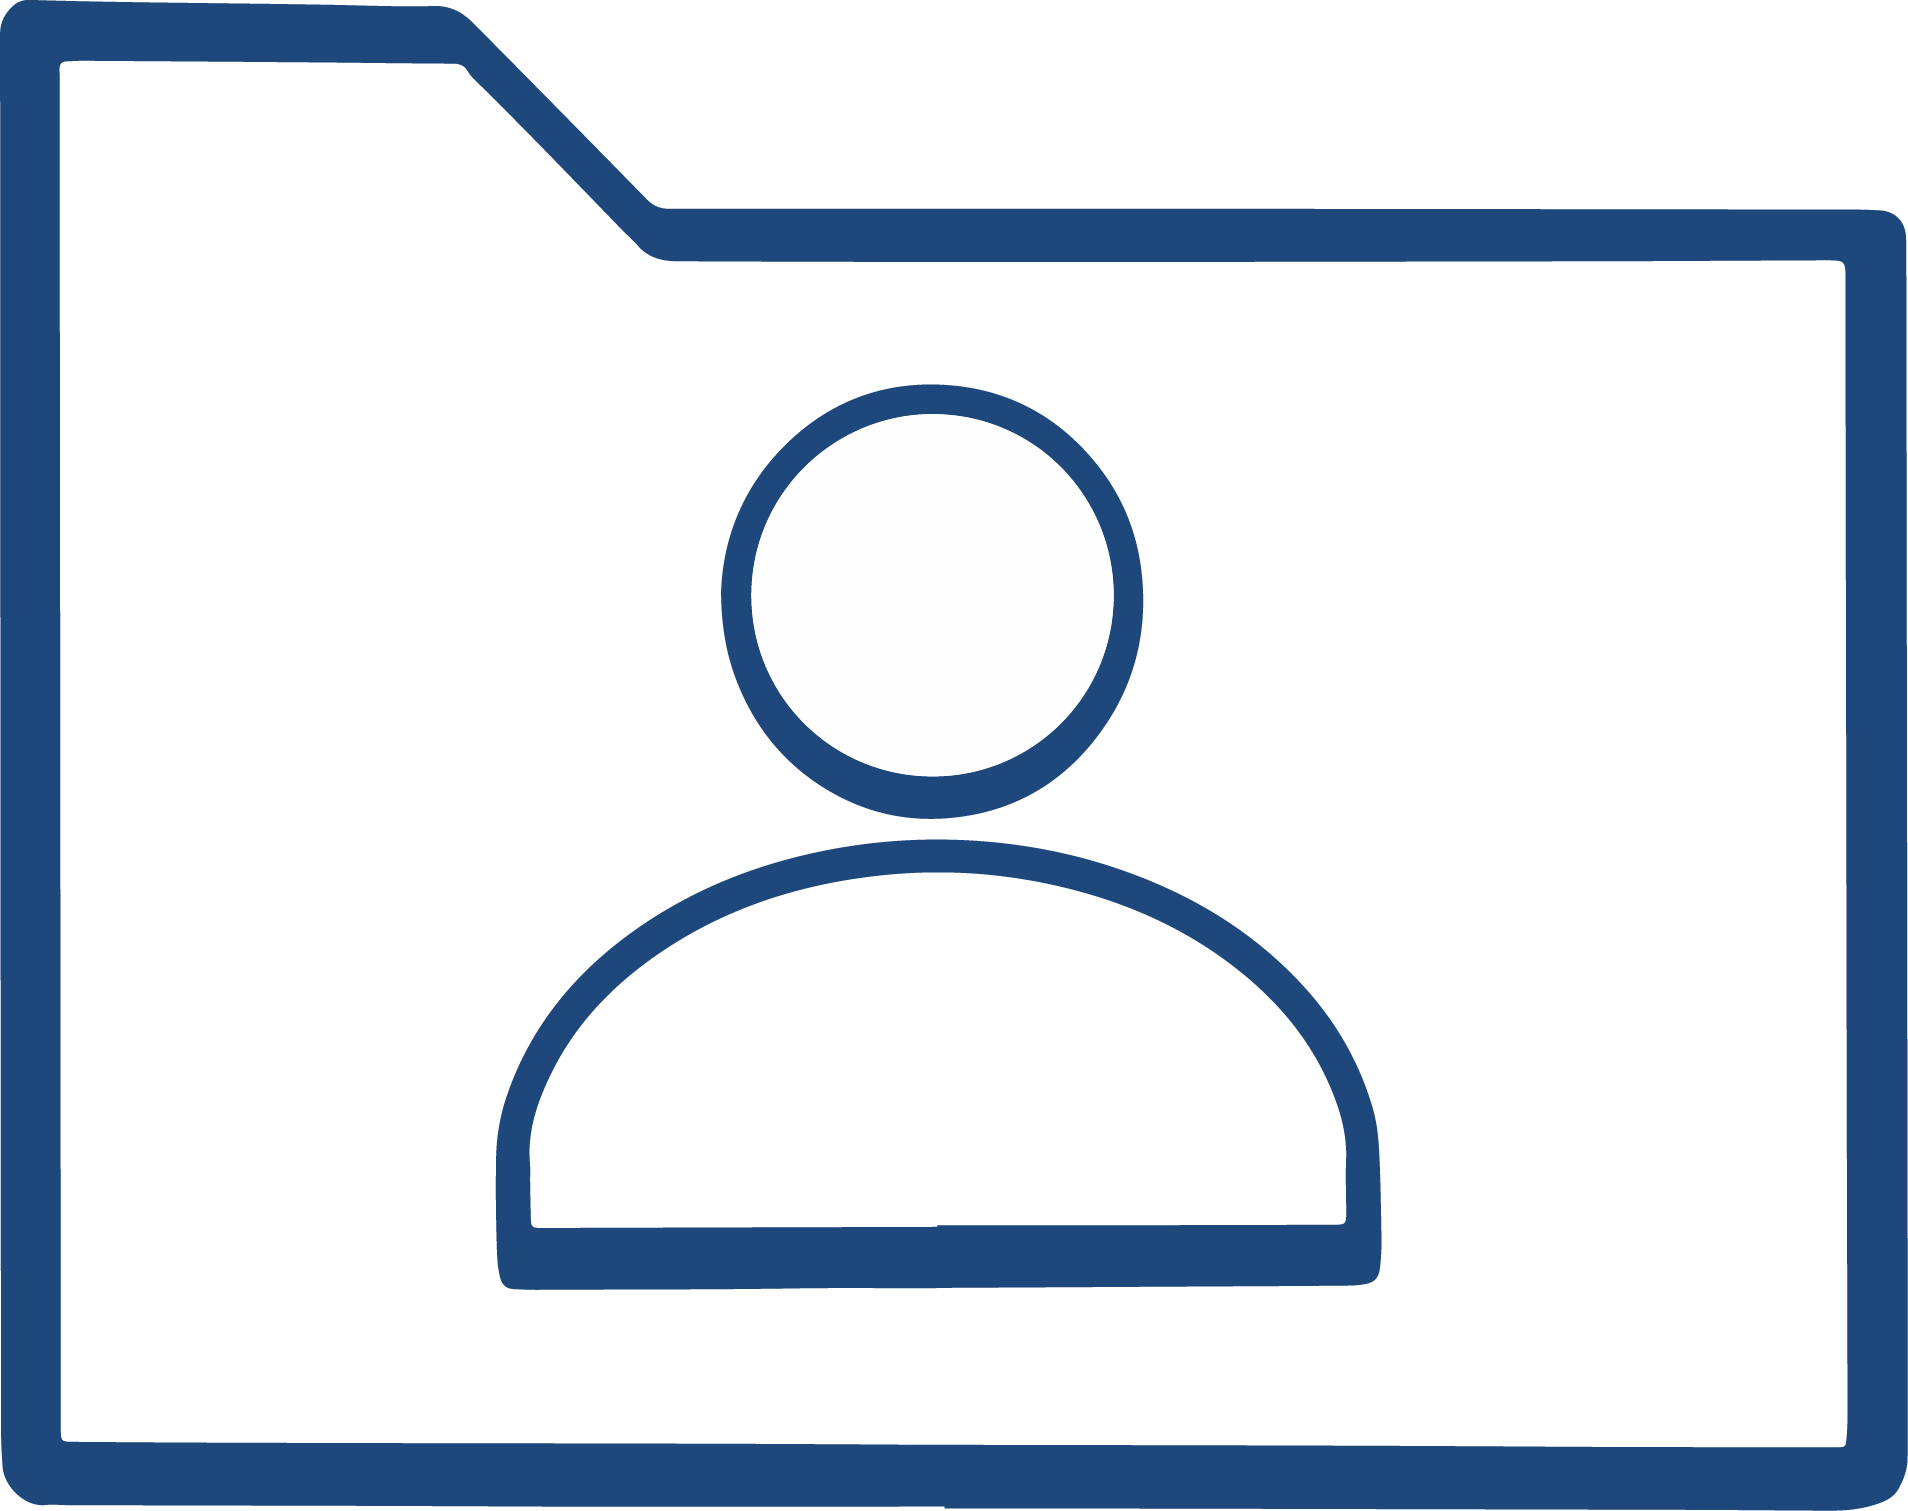 Anonymized data icon